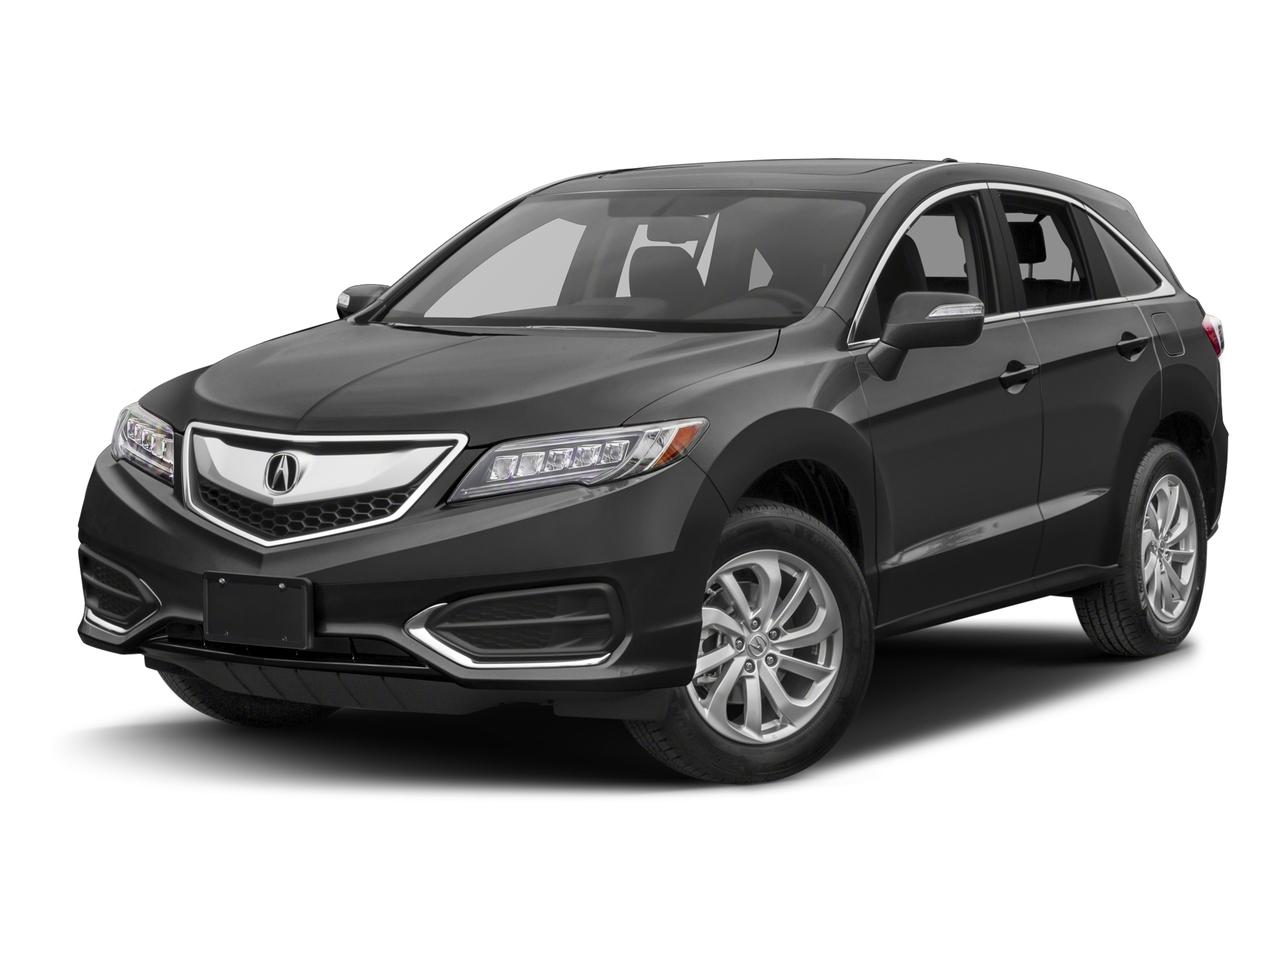 2017 Acura RDX Vehicle Photo in Grapevine, TX 76051